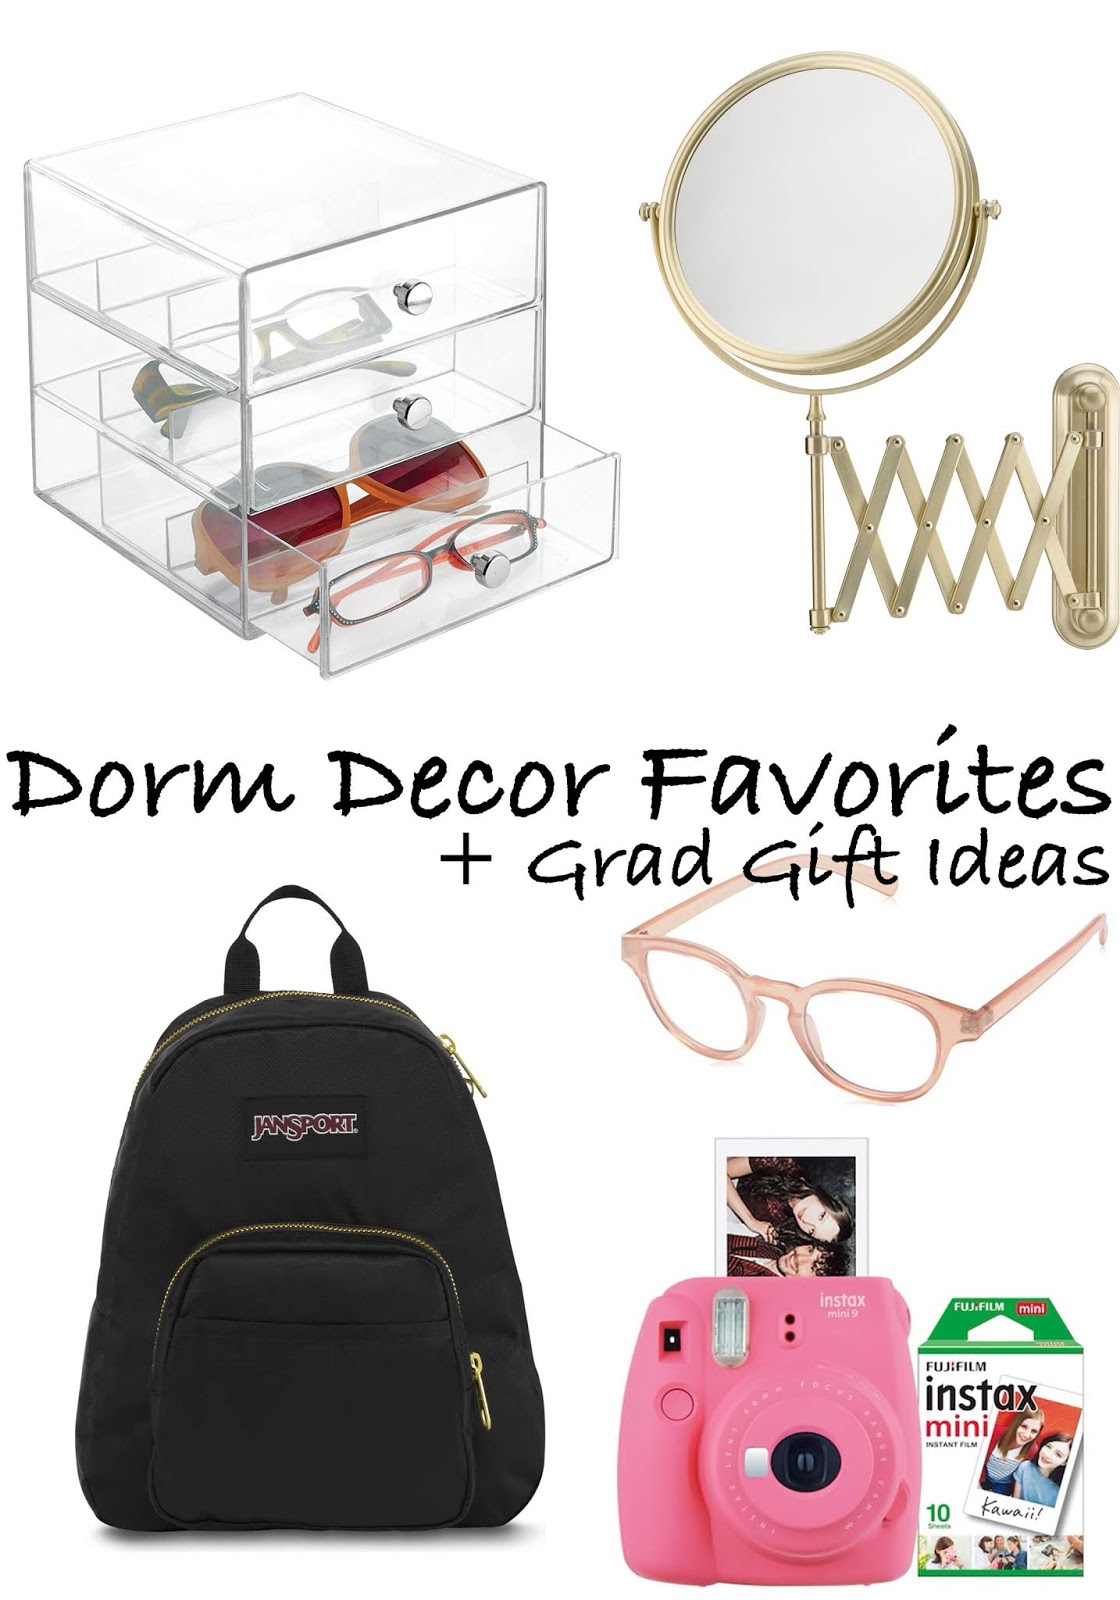 Dorm Decor Favorites + Grad Gift Ideas